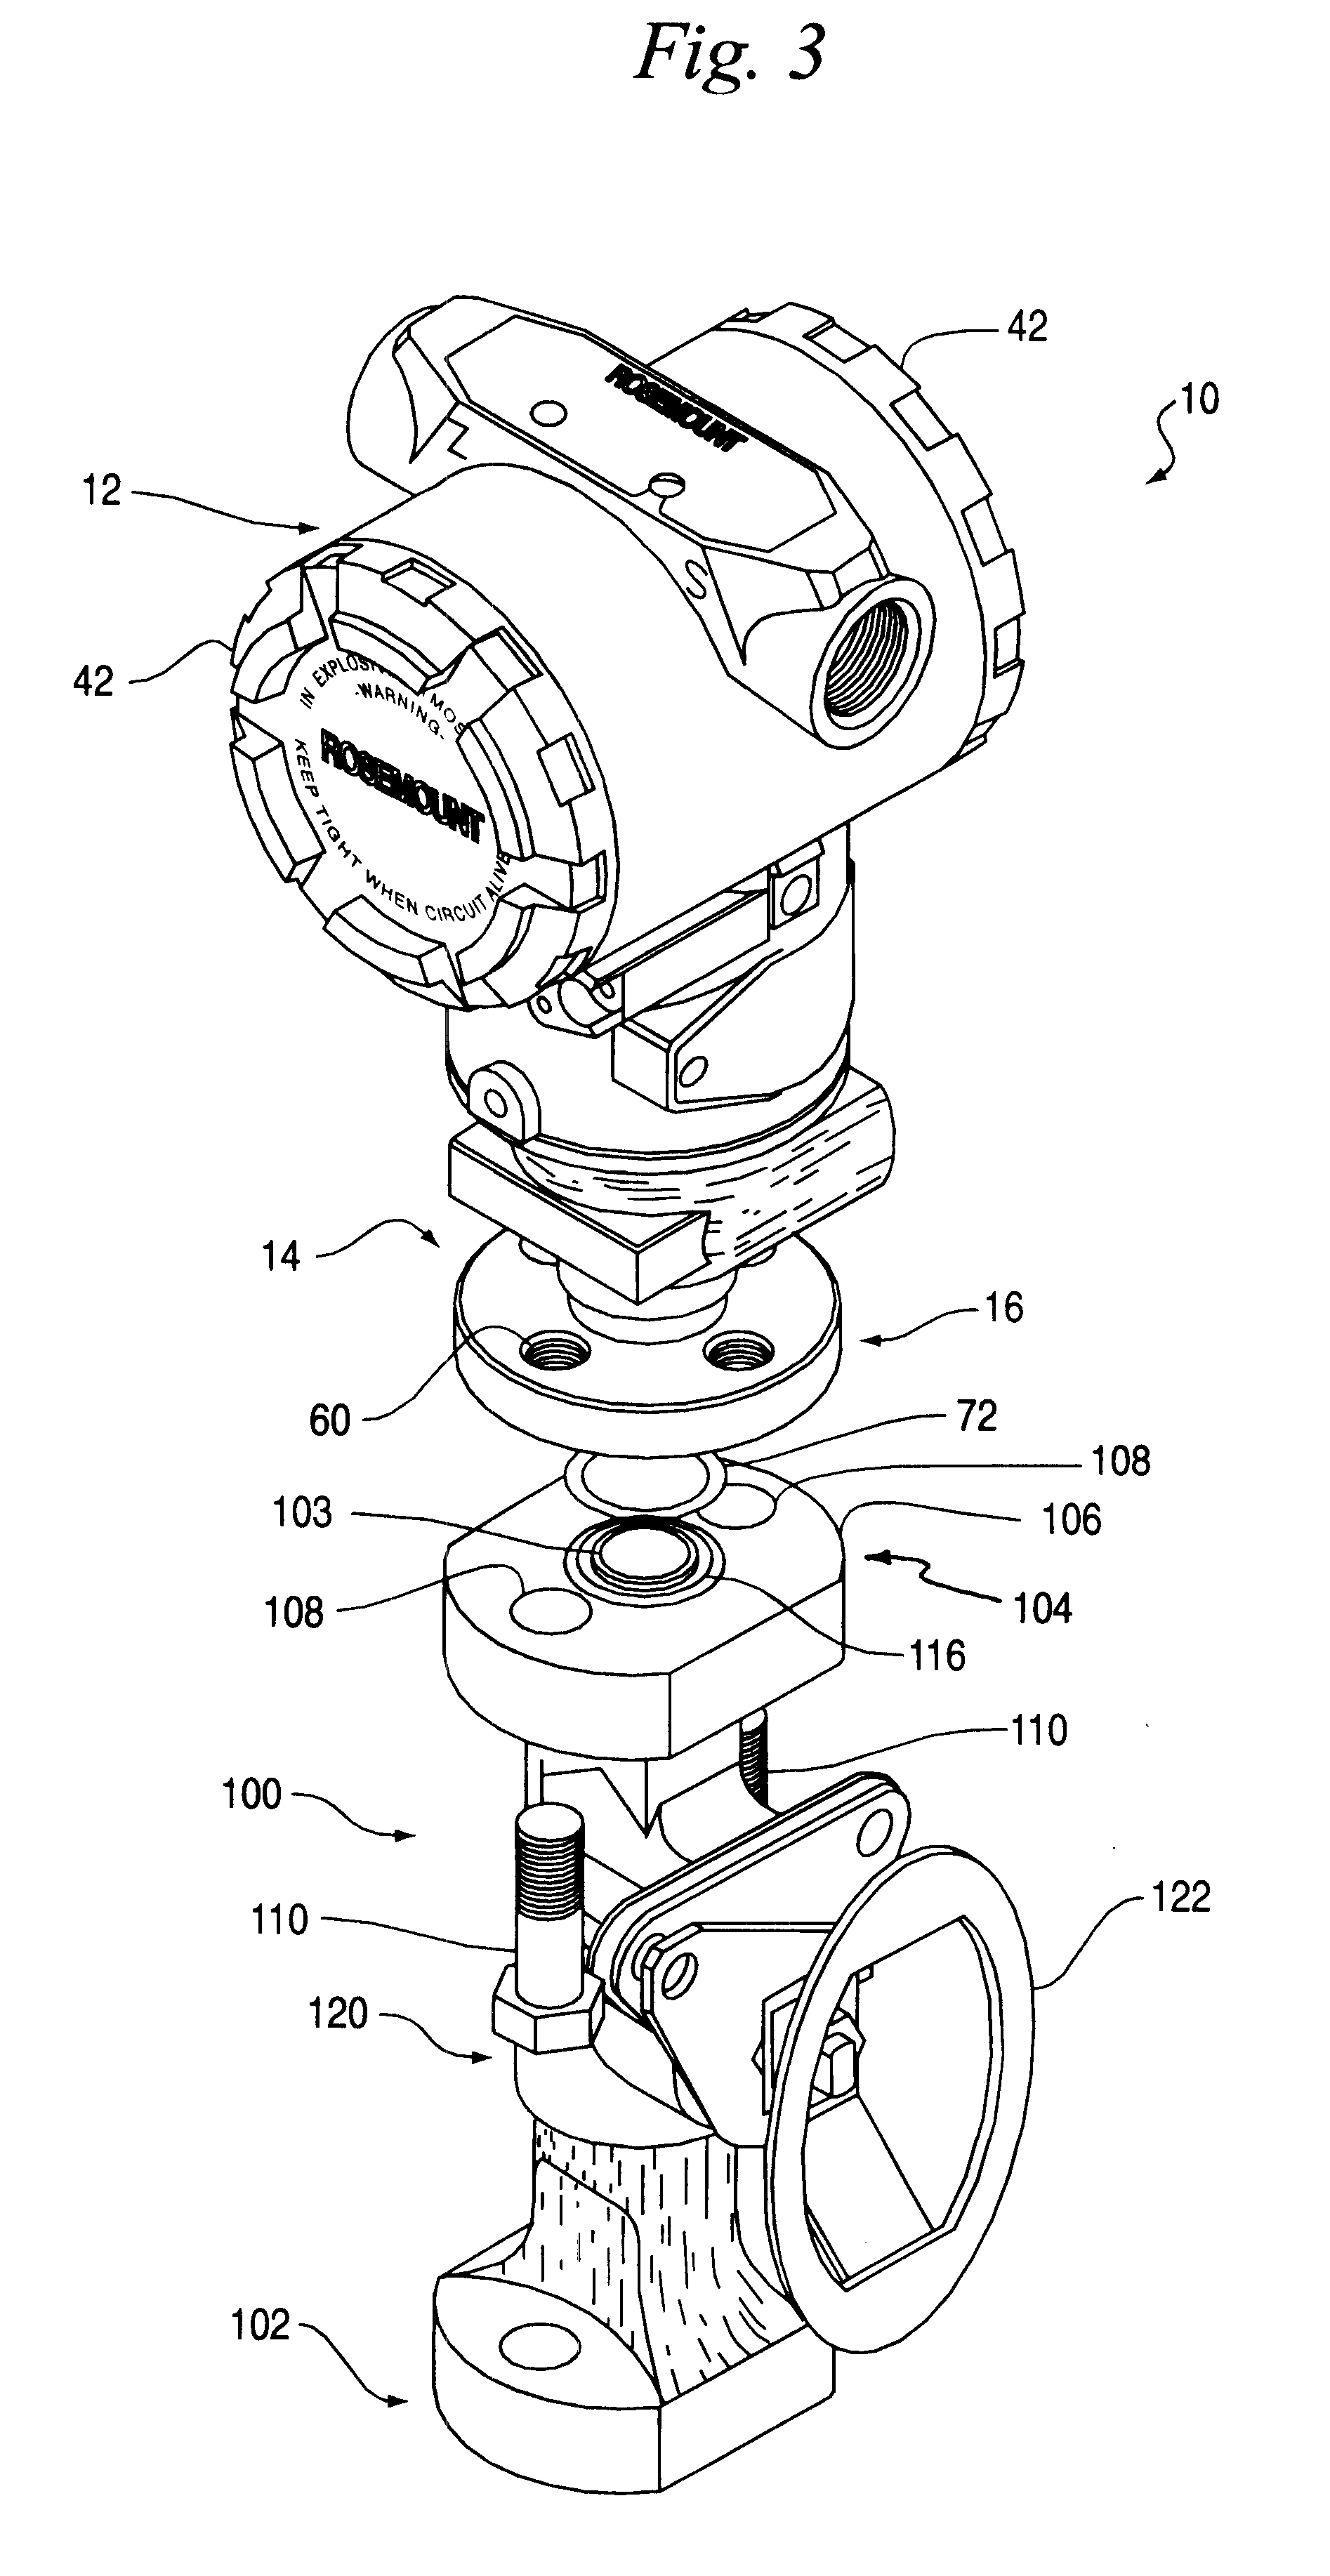 patent us6568278 - process connection for in-line pressure transmitter